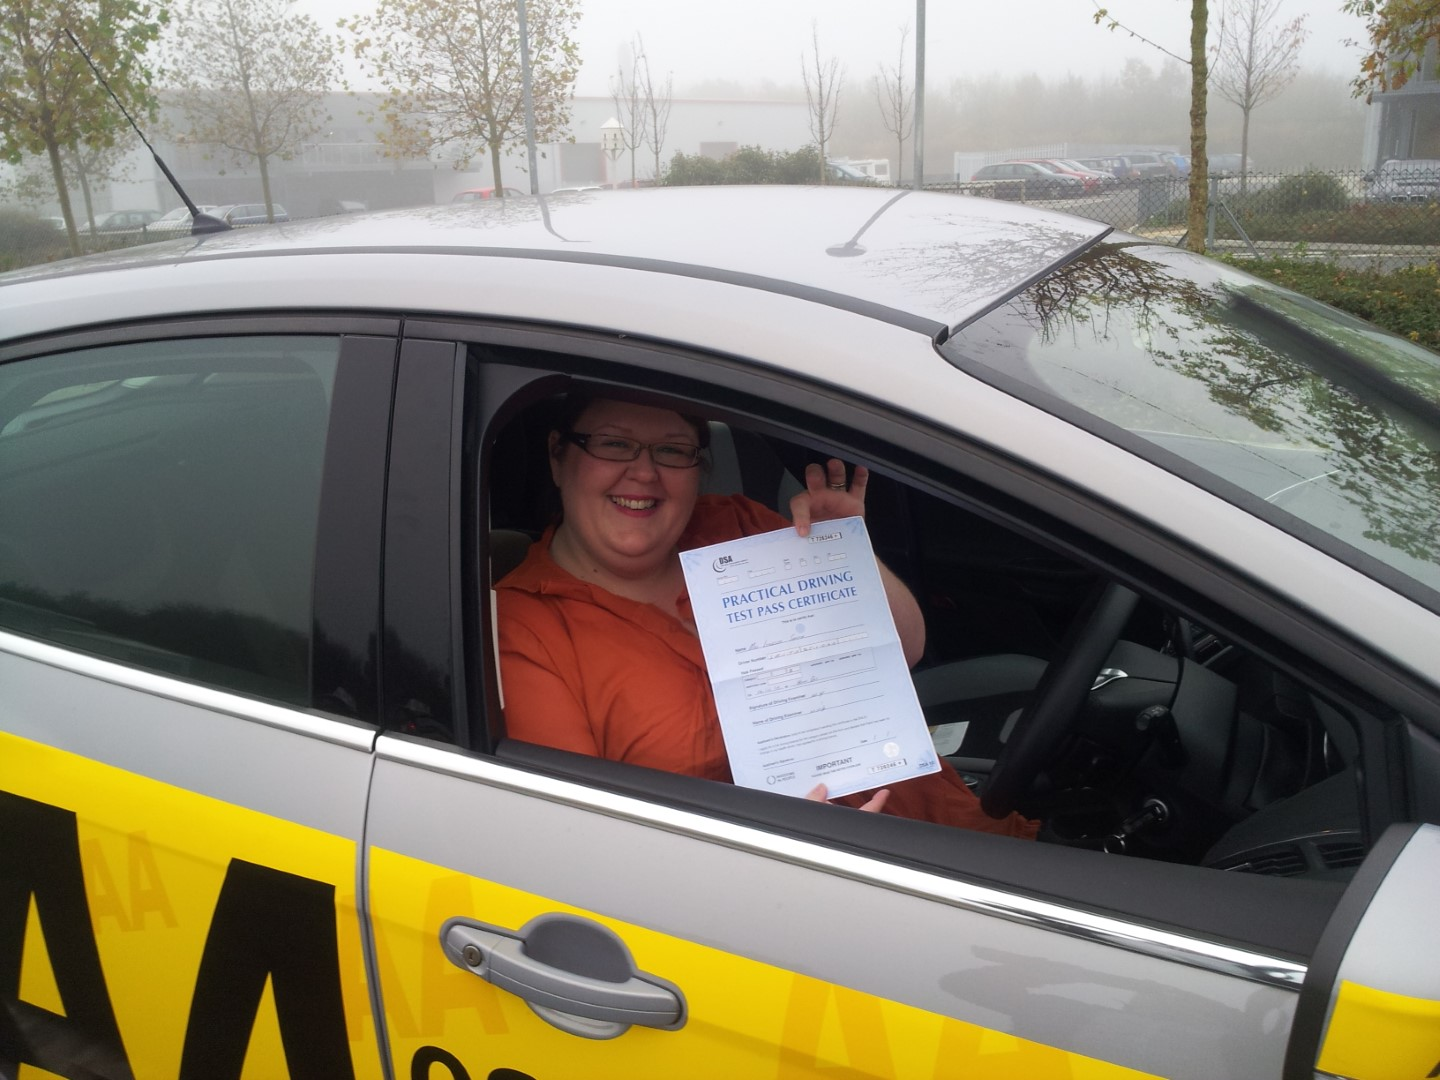 Thanks @ADI_Nick all your patience and help for getting this nervous Nerris through her driving test 2nd time lucky!